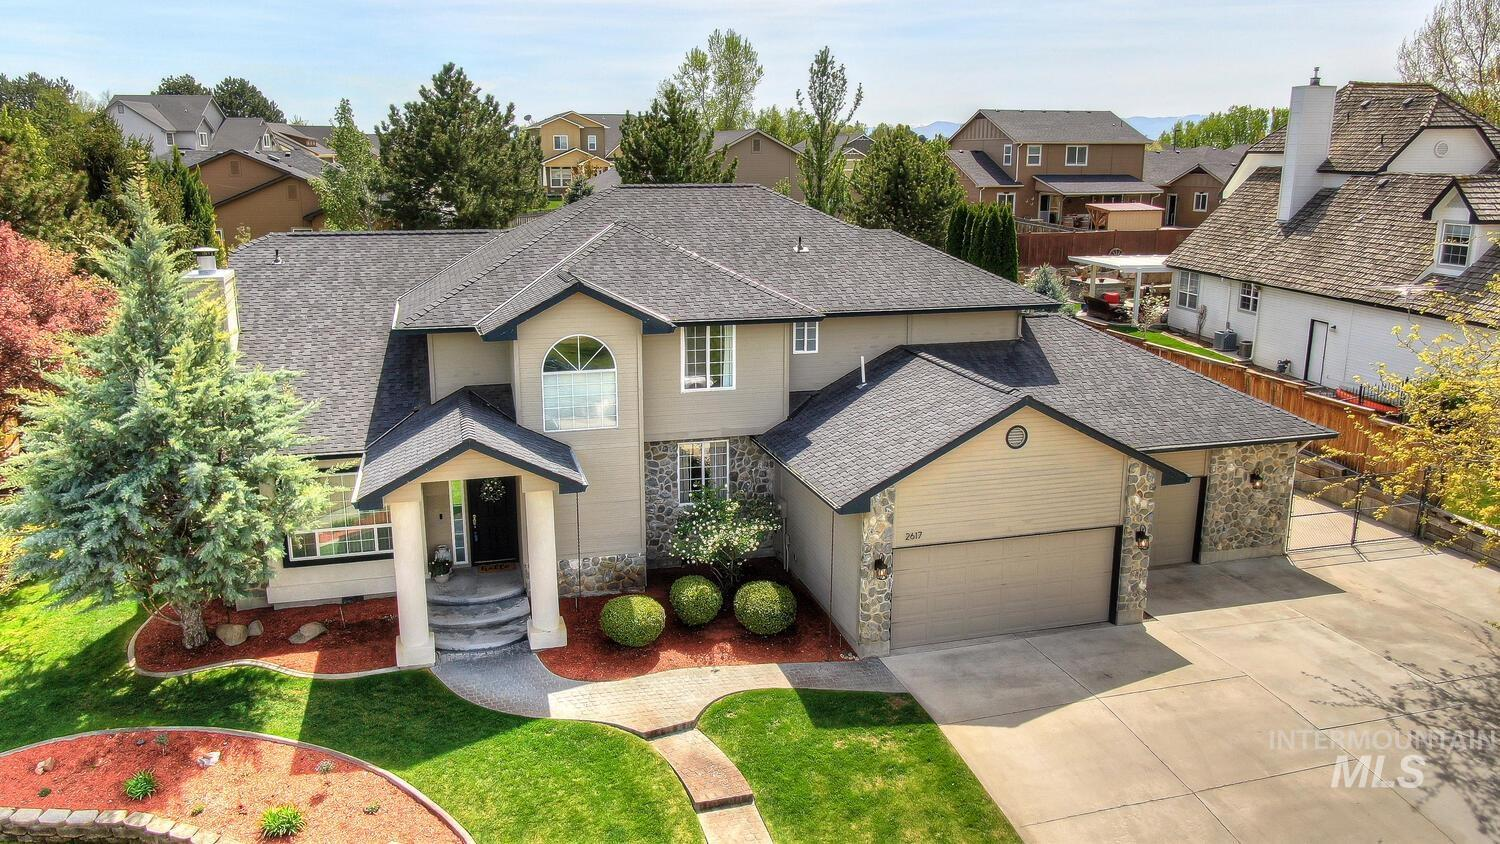 2617 Toma Ct Property Photo - Nampa, ID real estate listing